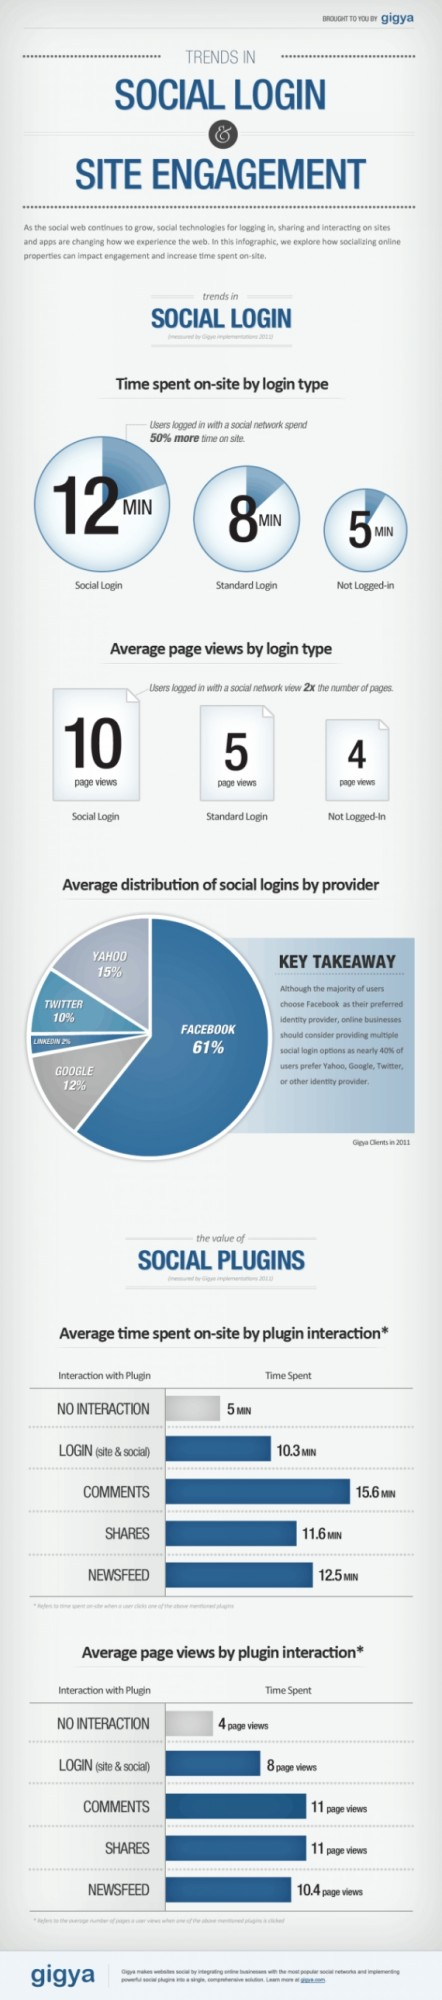 "Infografik mit dem Titel ""Trends in Social Login & Site Engagement"""